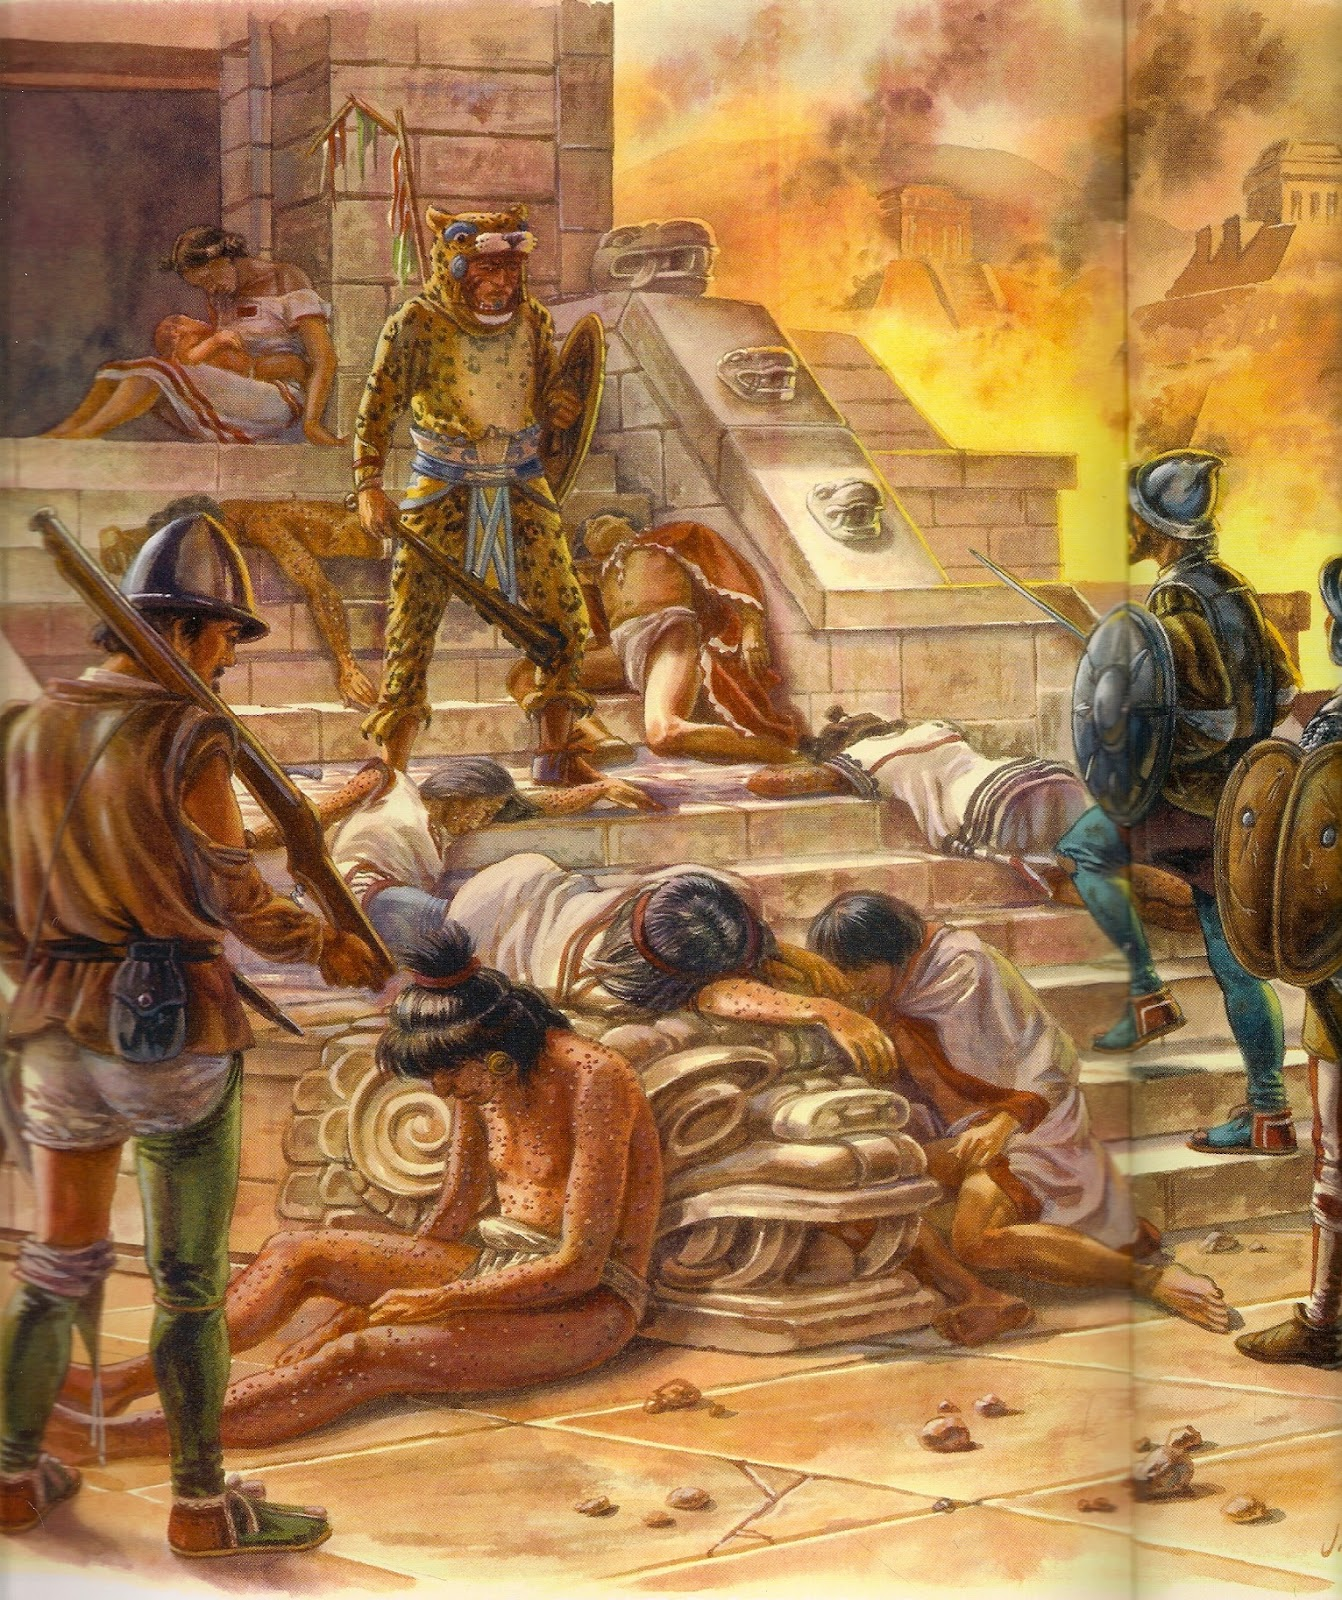 spanish conquest of the aztec empire The spanish conquest of the aztec empire, beginning in february 1519, was one of the most significant events in the spanish colonization of the americas.